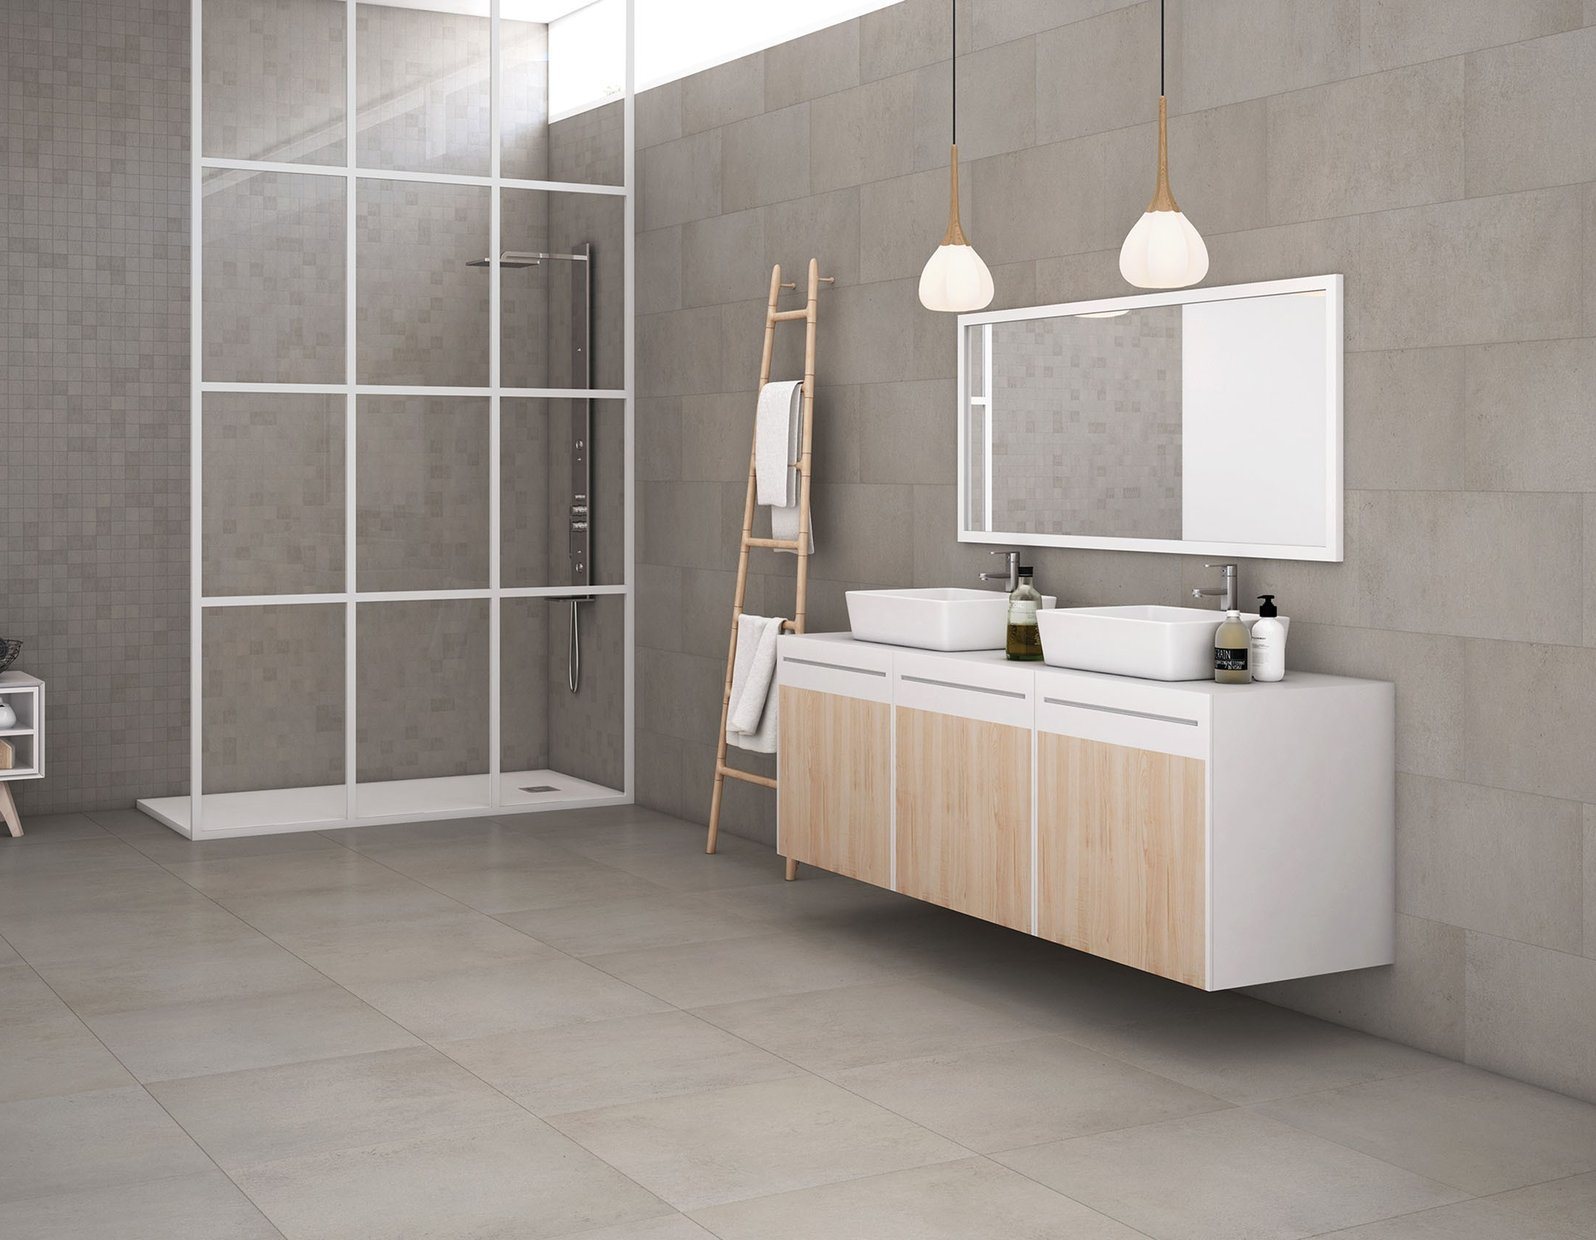 revive concrete Grey and White tiles Modern style Bathroom